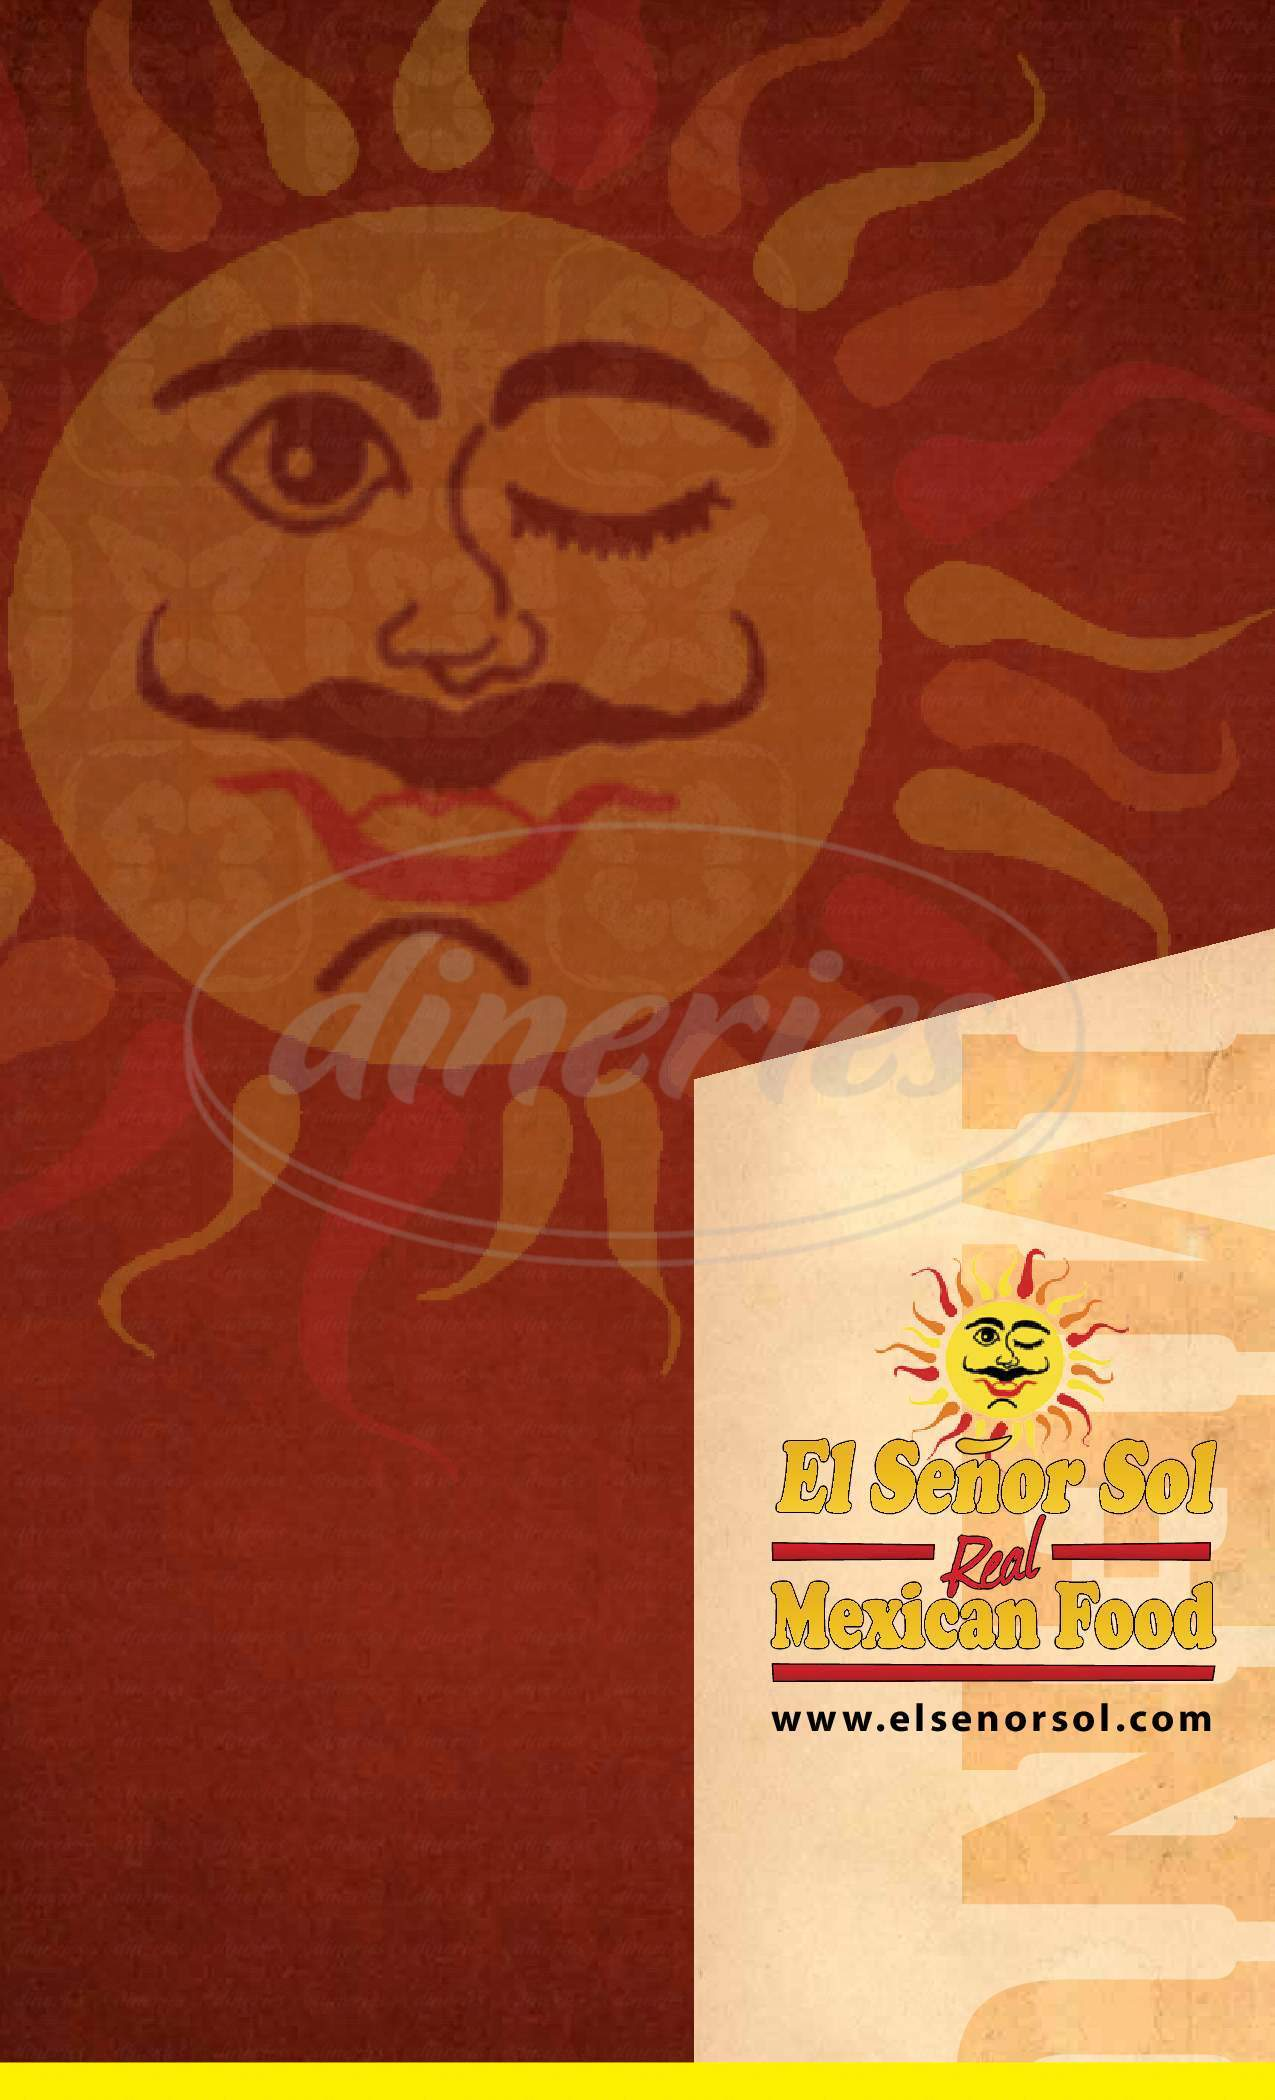 menu for El Senor Sol